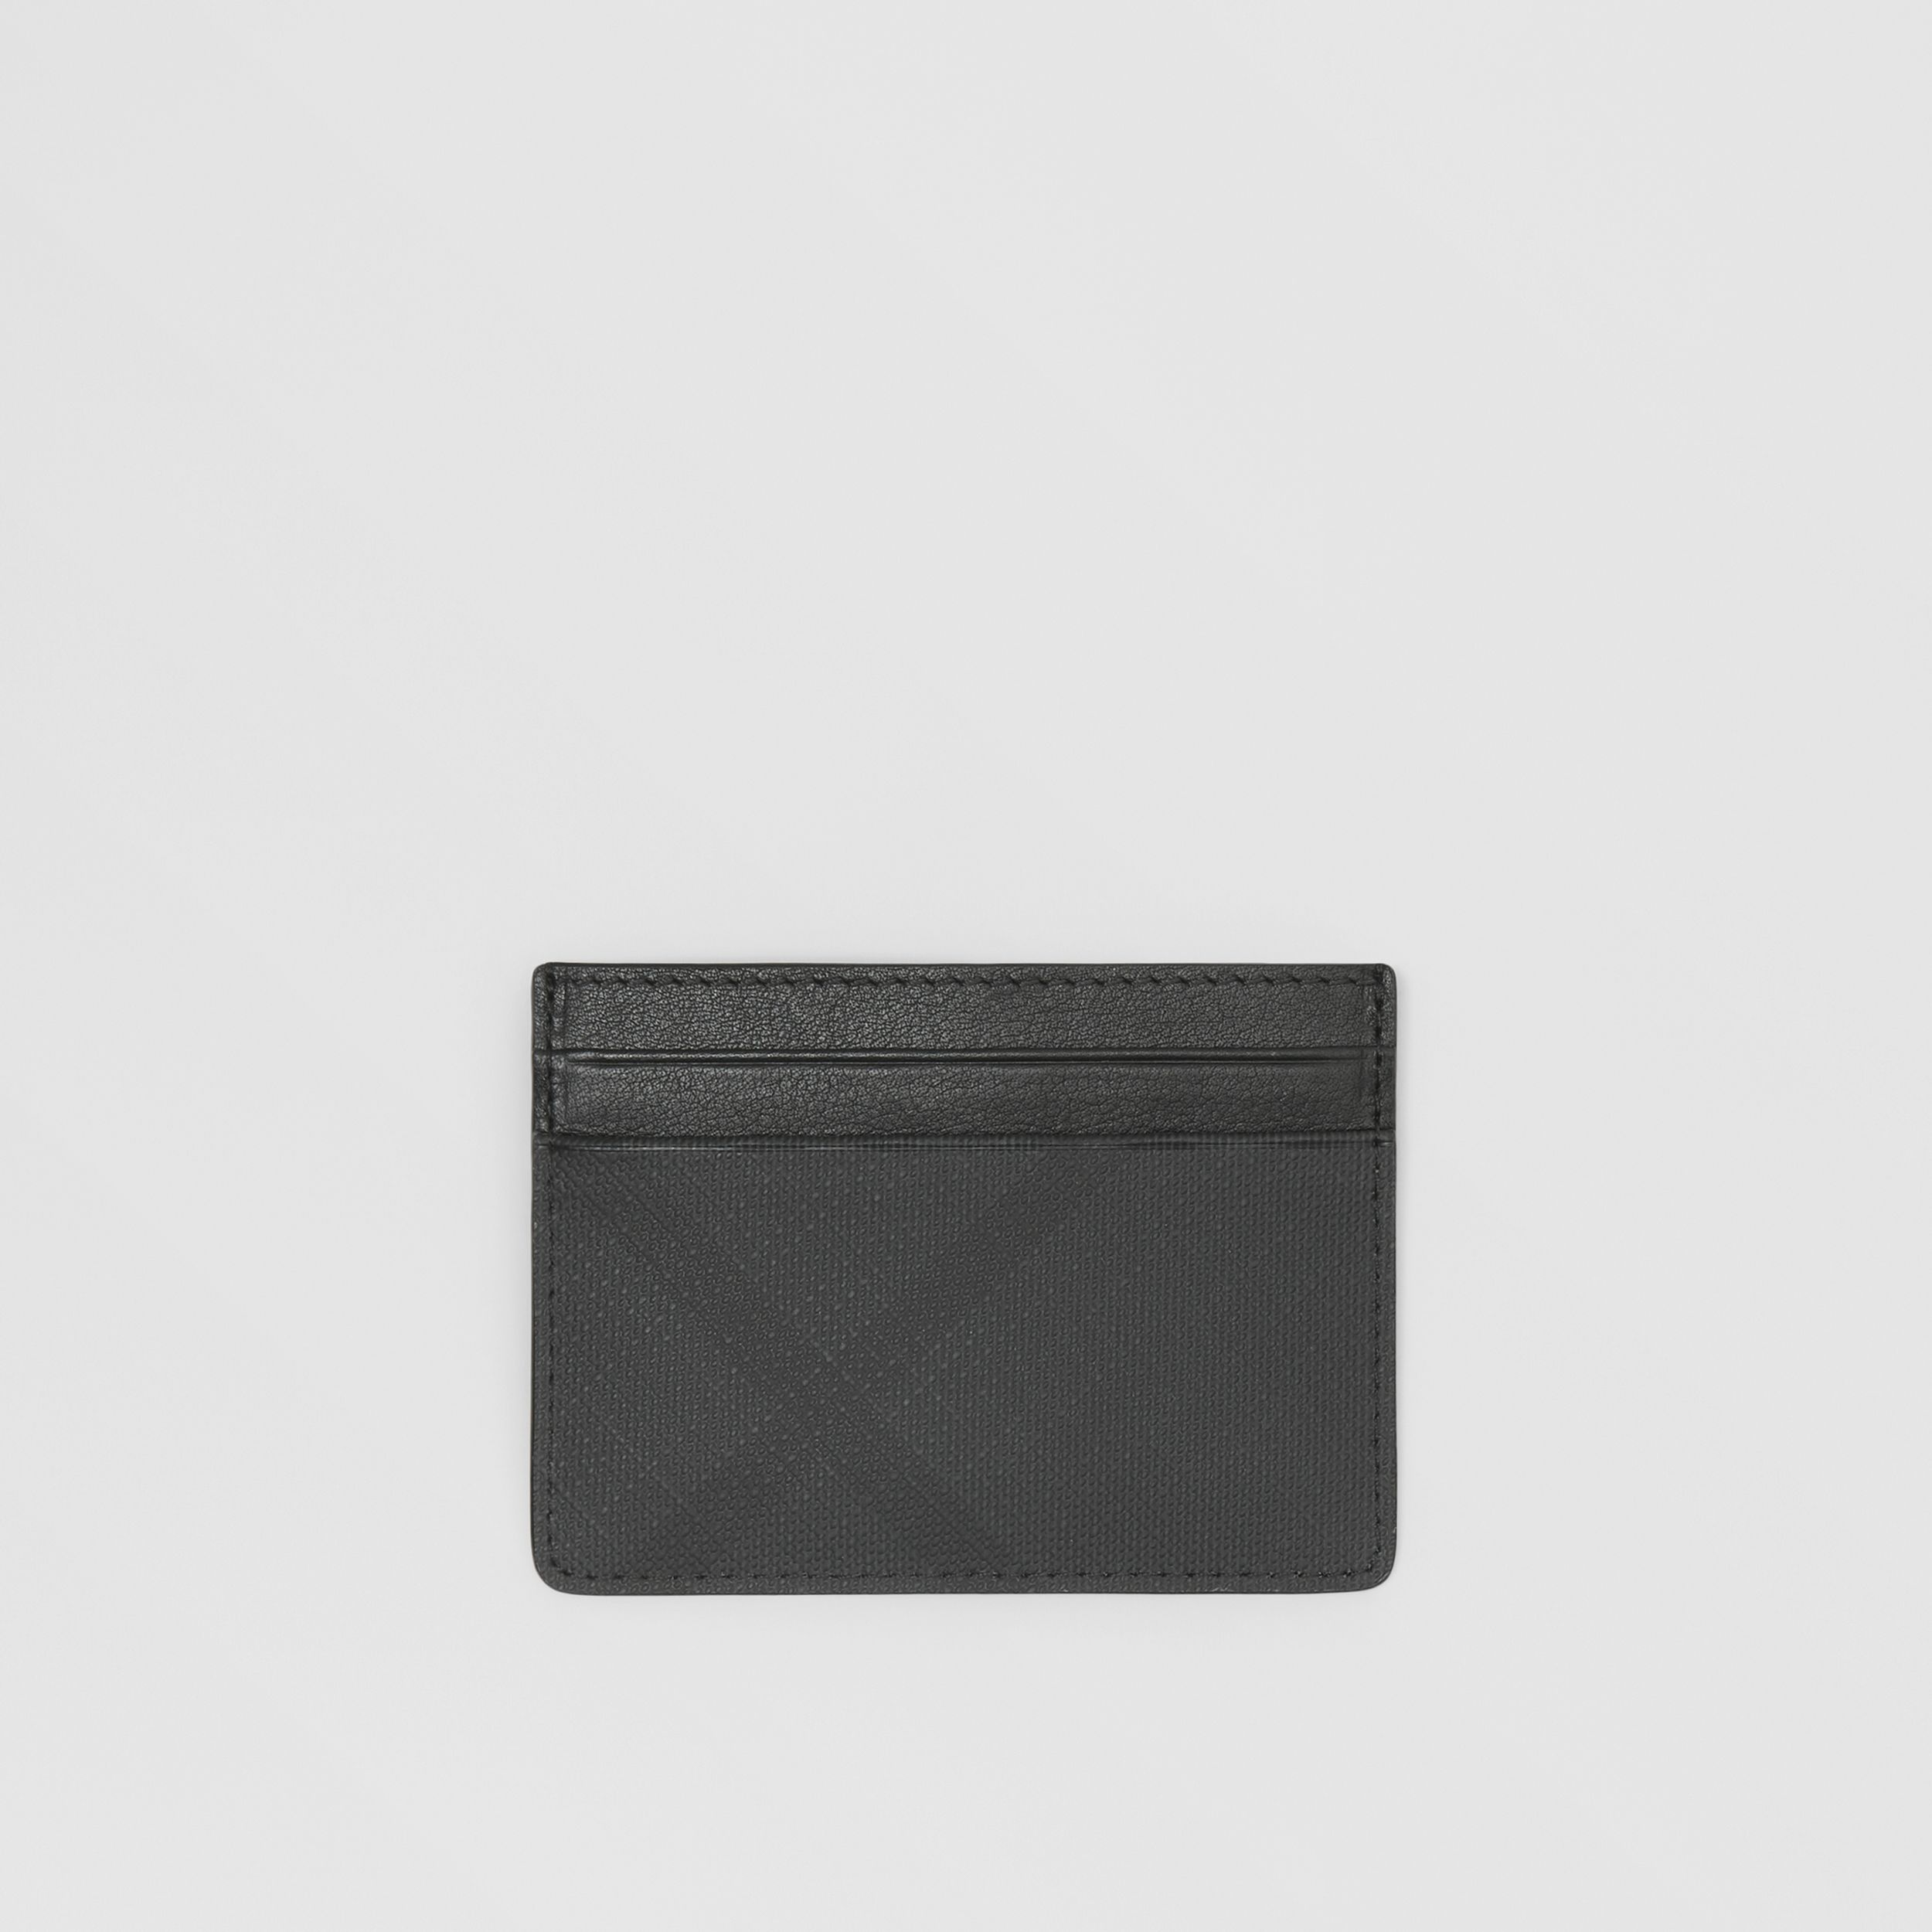 London Check and Leather Card Case in Dark Charcoal - Men | Burberry Australia - 1